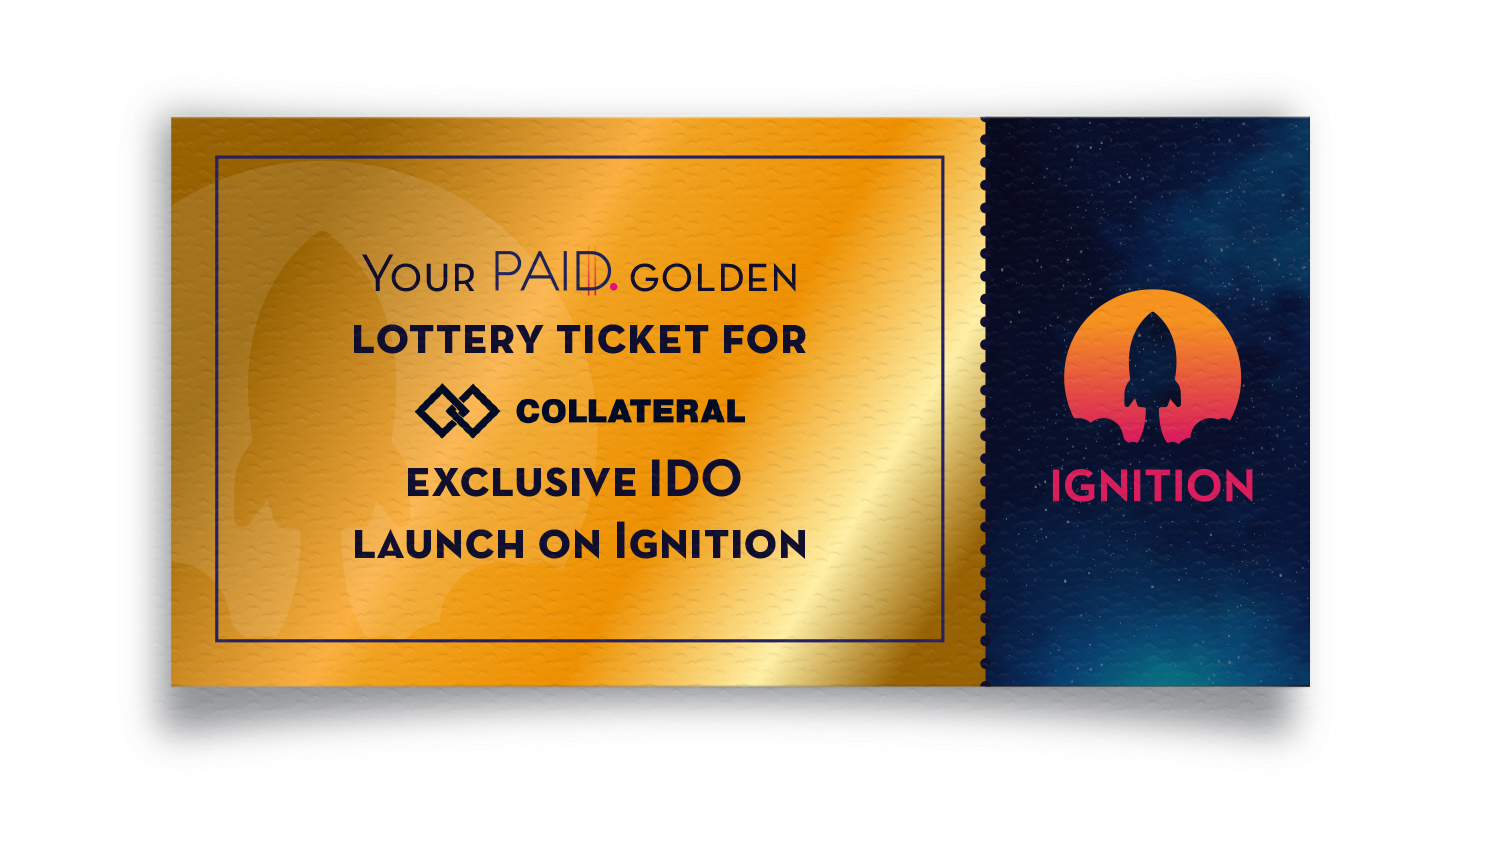 Lottery Ticket for Collateral Exclusive IDO launch on Ignition